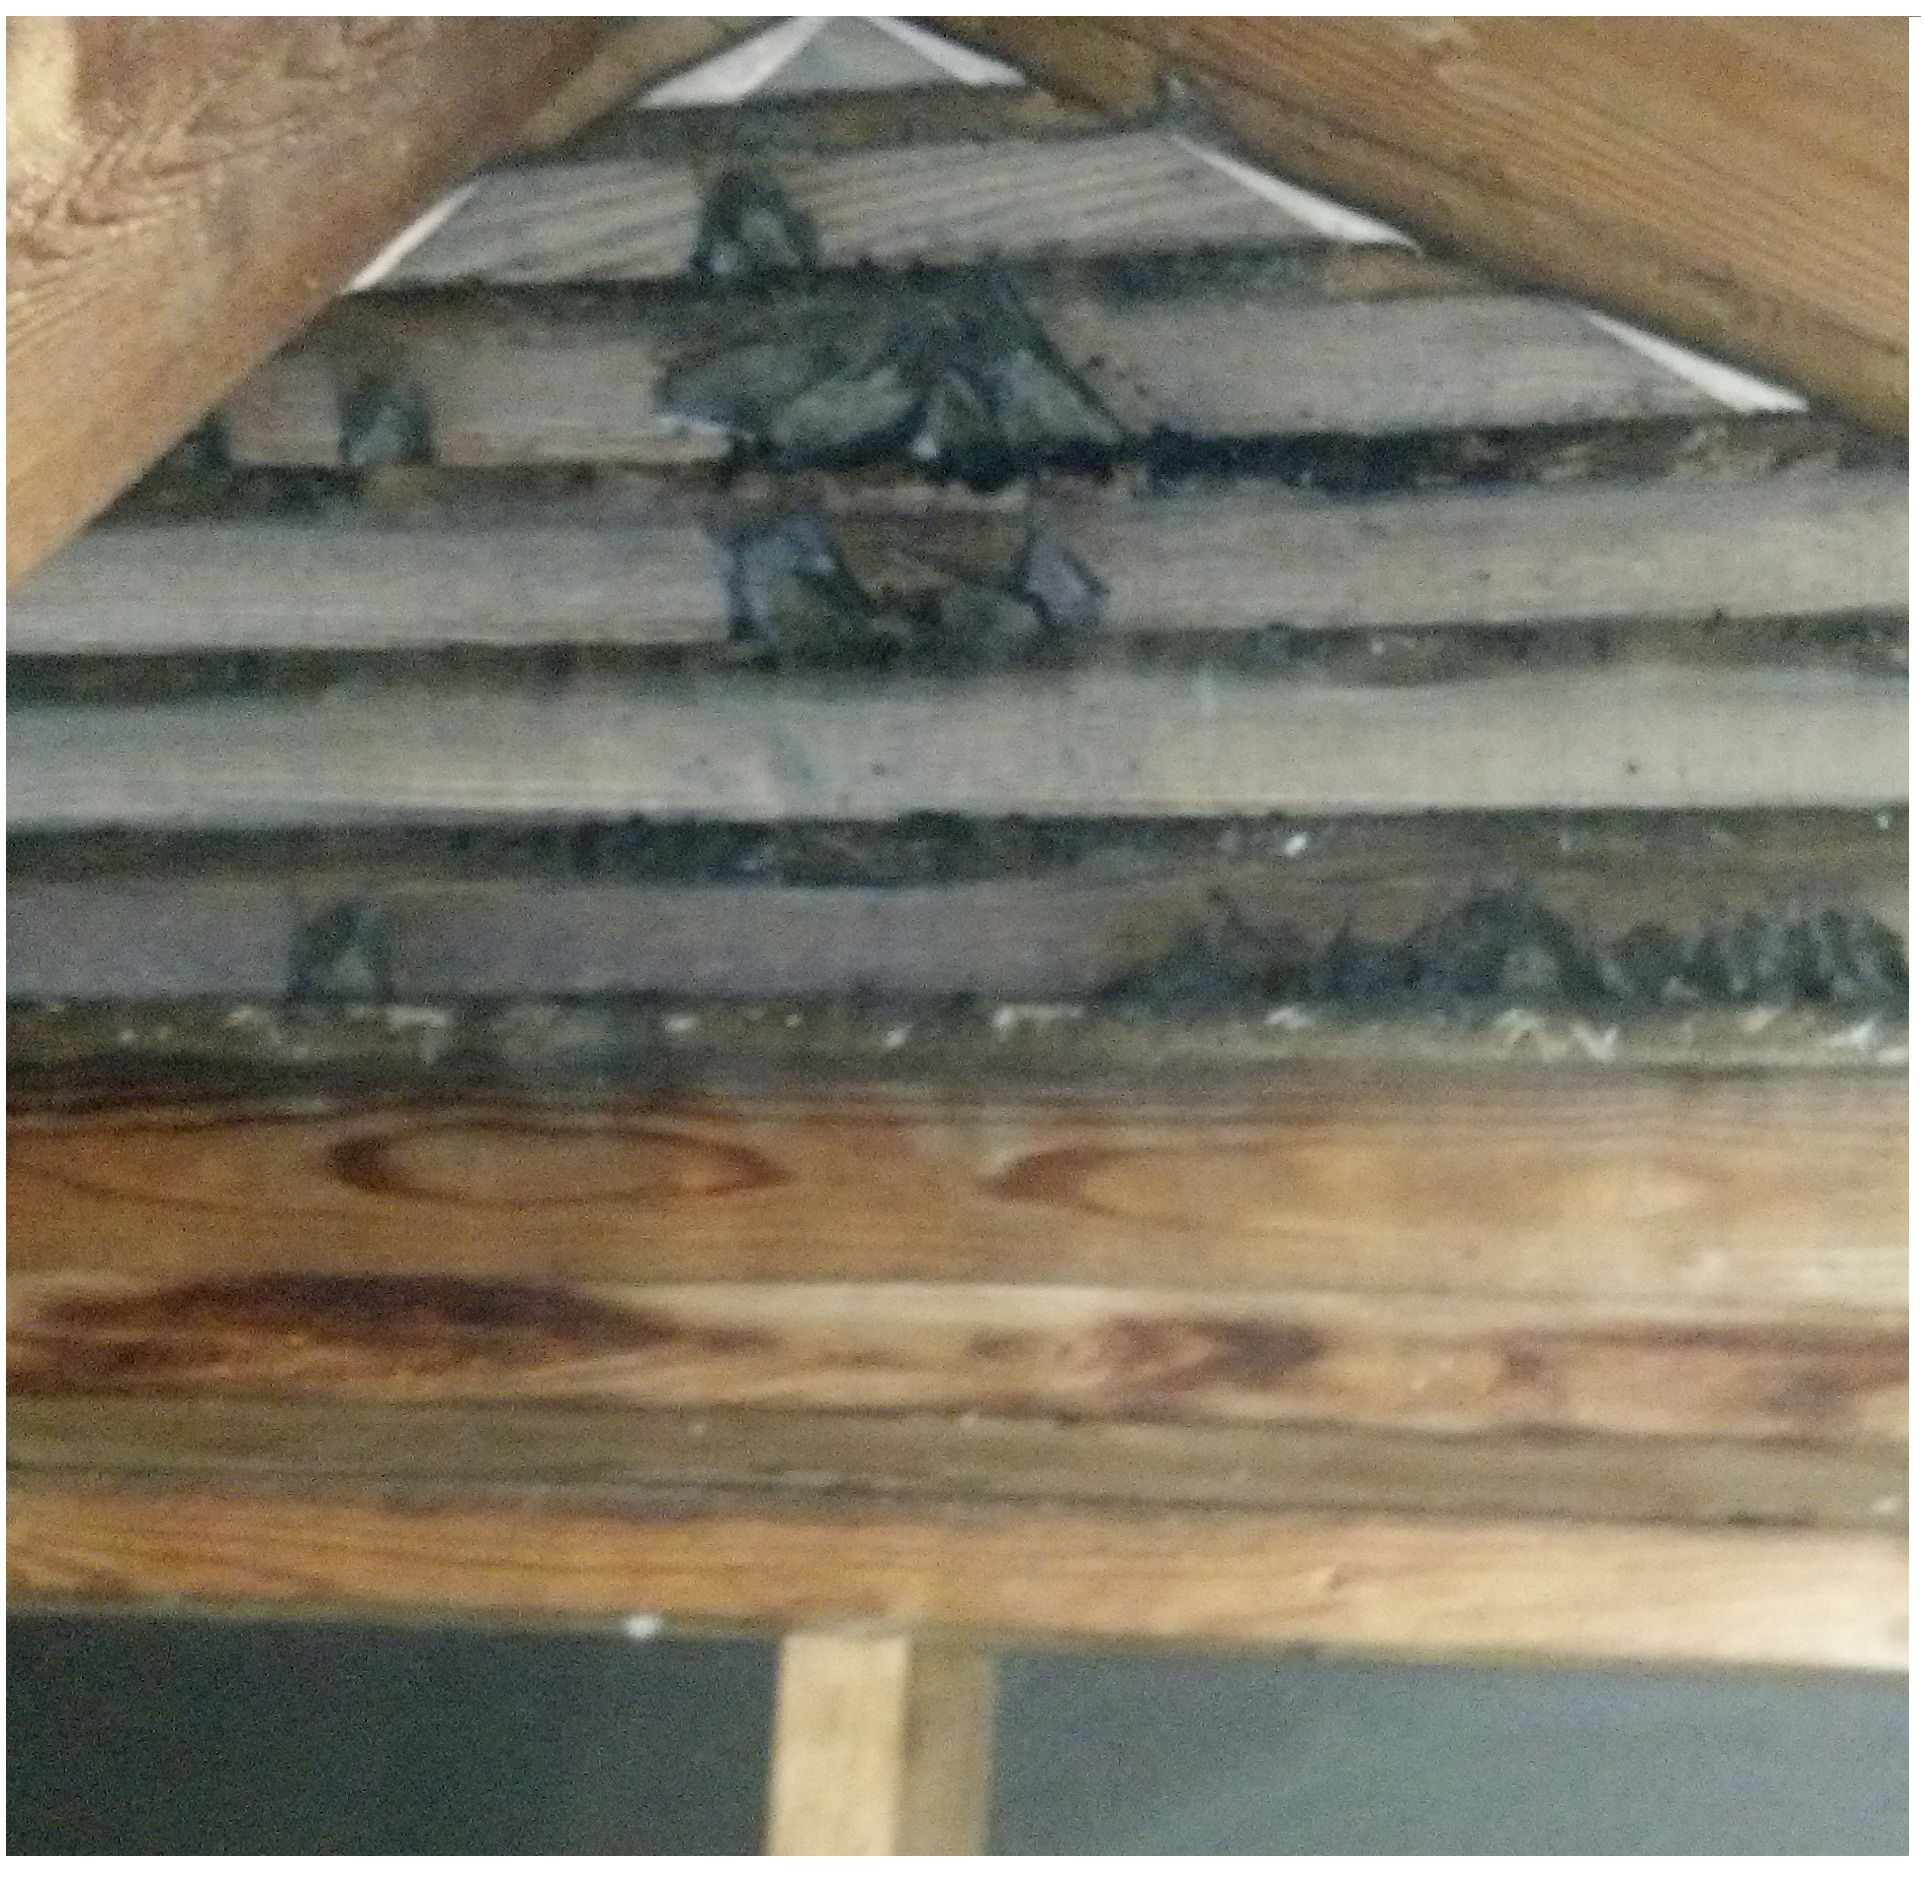 Bats In The Attic In Mooresville Bat Removal